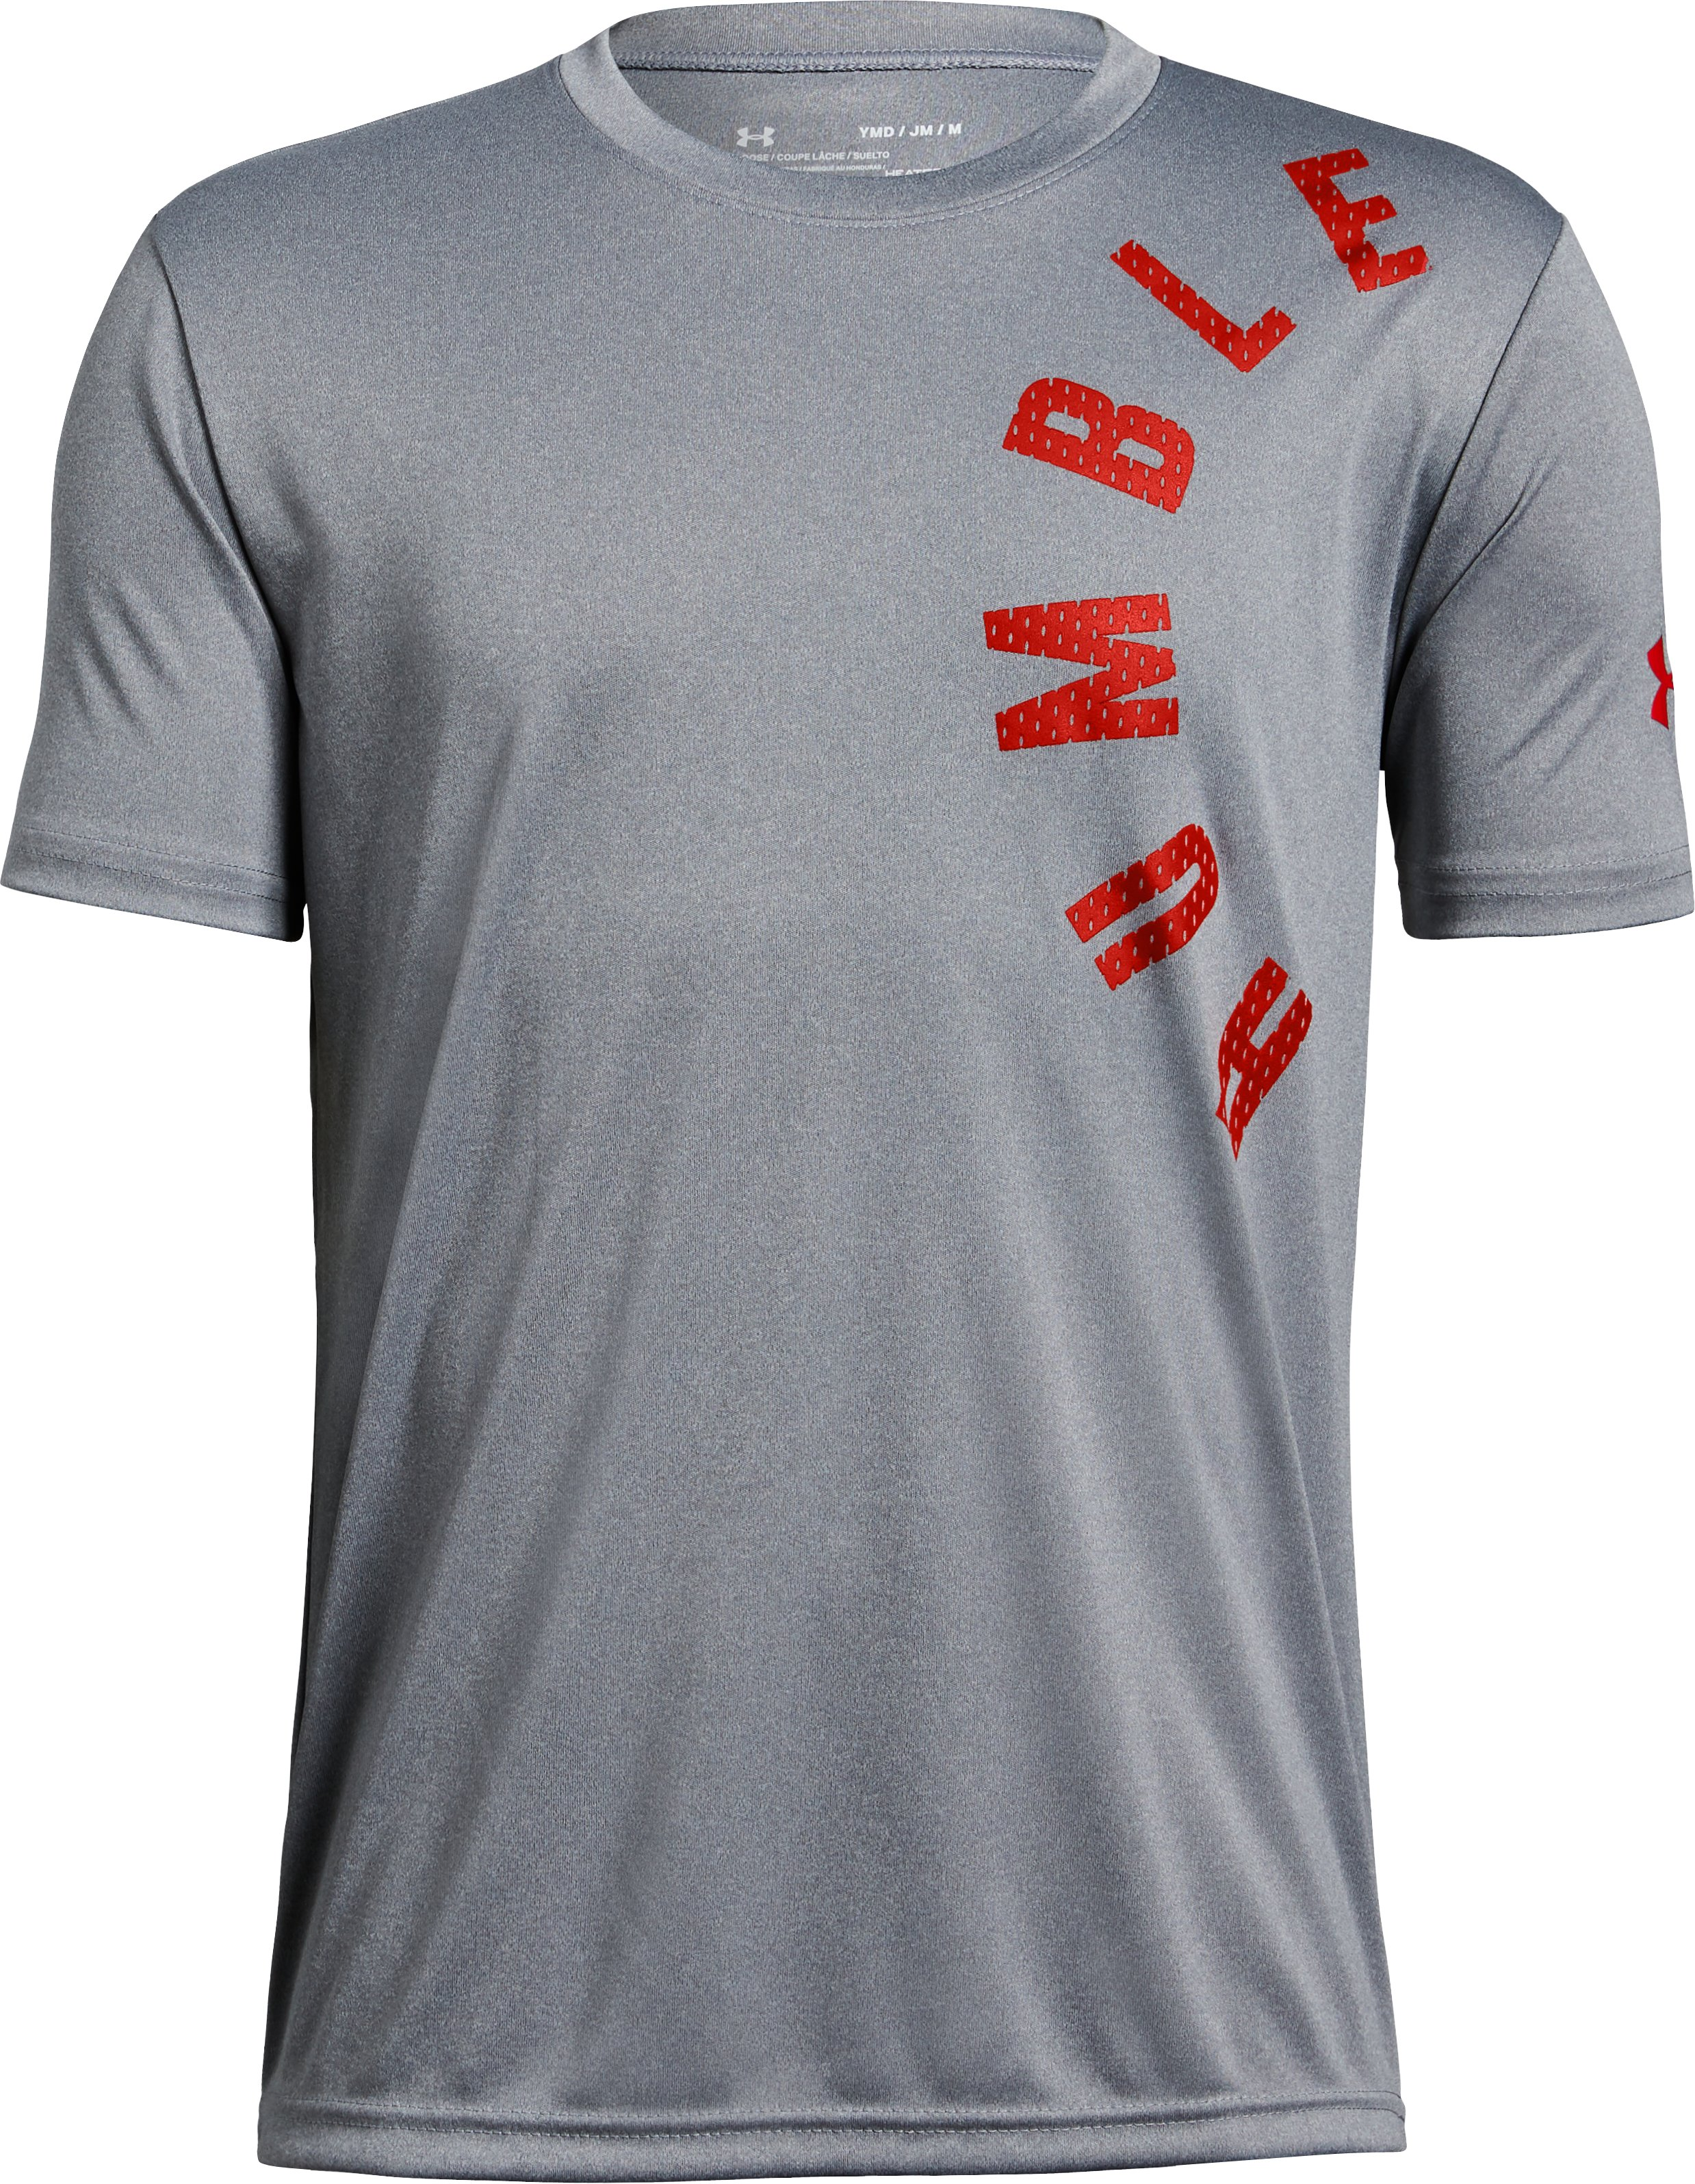 Boys' UA Humble & Hungry Short Sleeve T-Shirt, STEEL LIGHT HEATHER